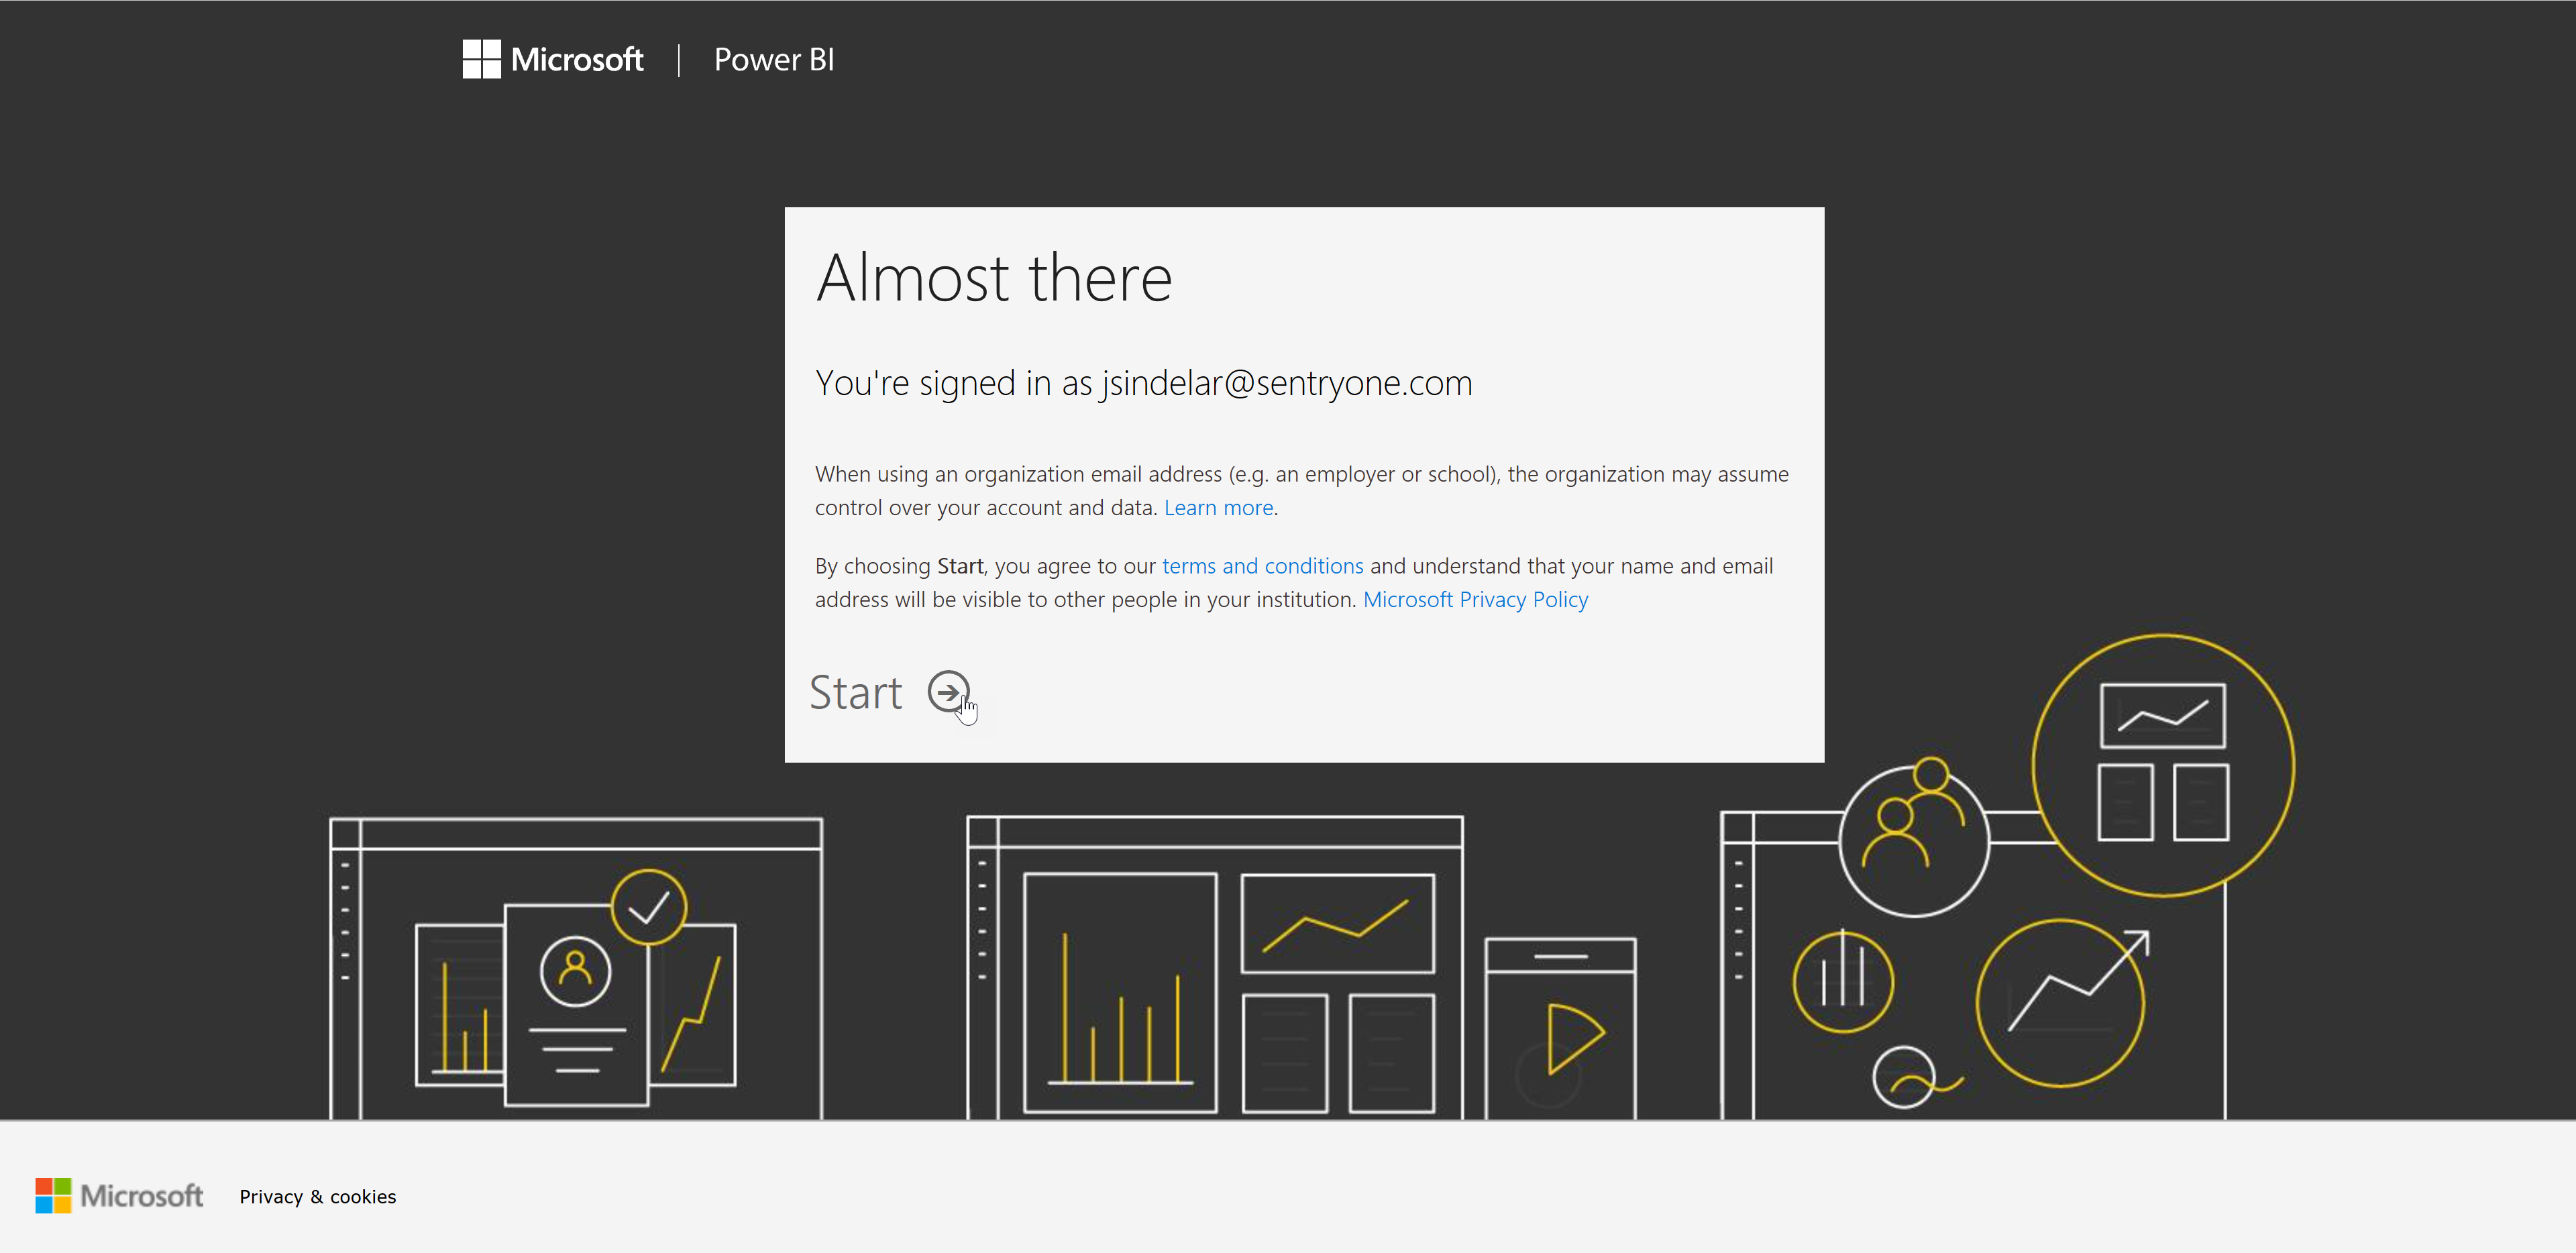 Log into your Power BI account